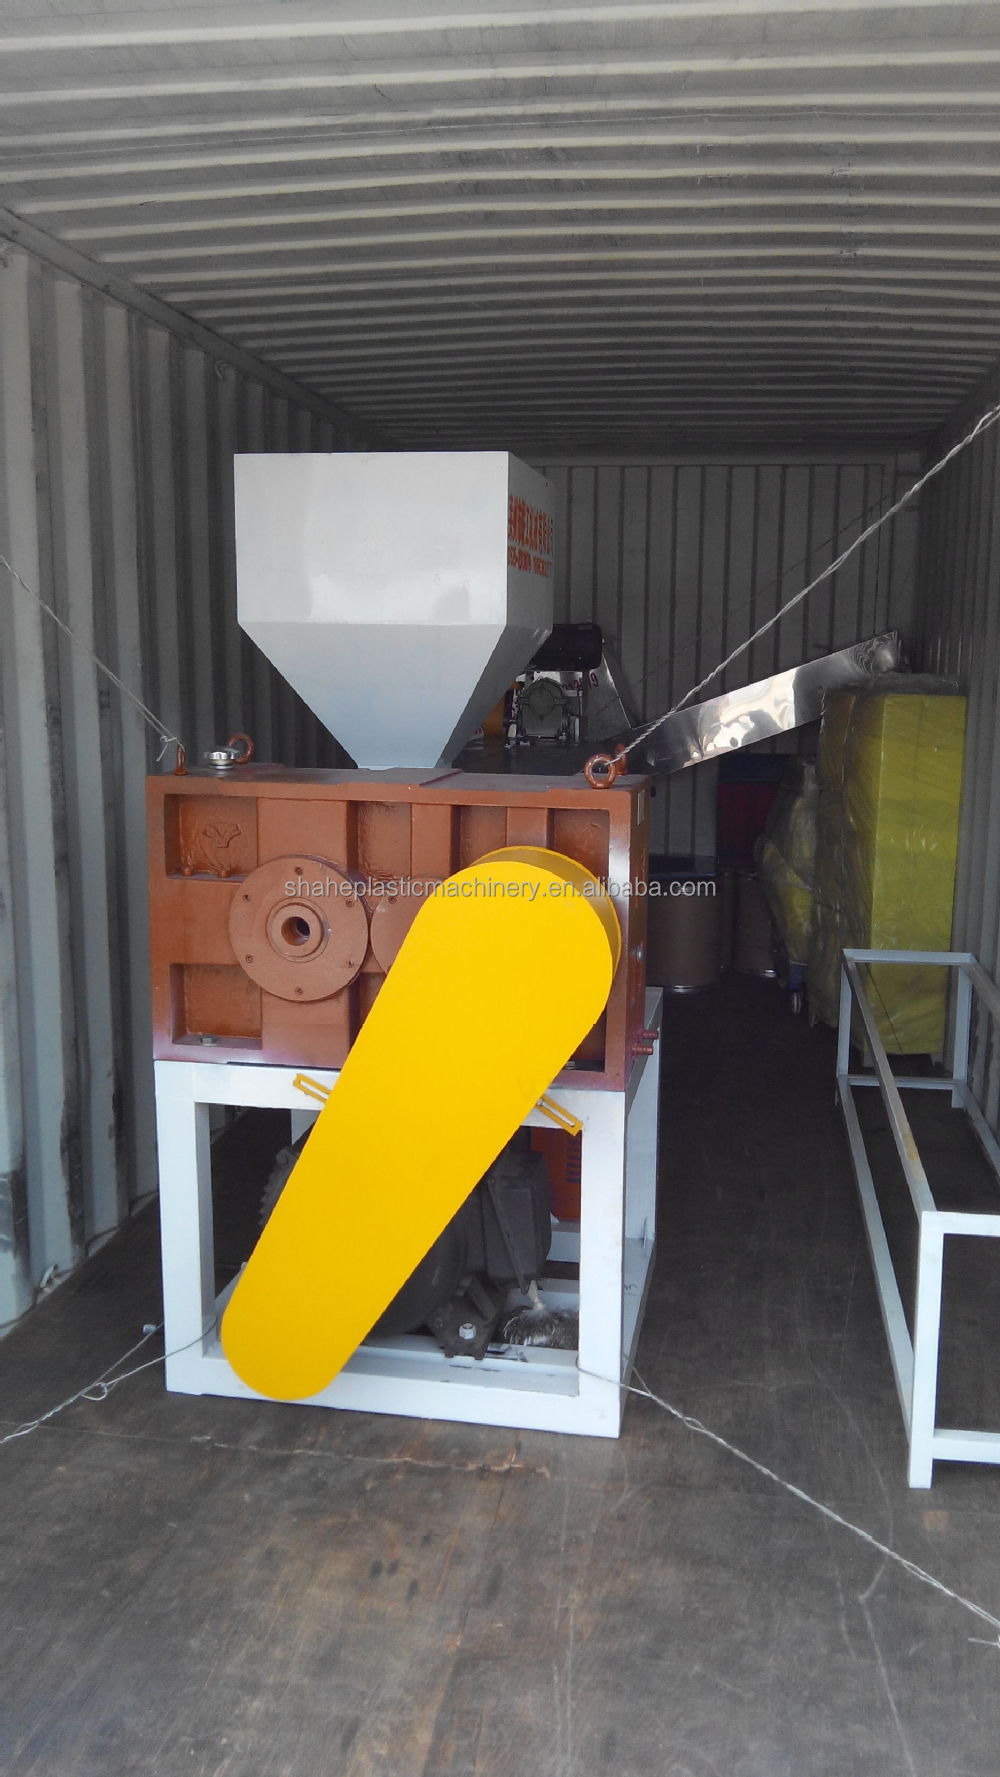 Double stage waste plastic granulator/ laizhou plastic recycling machinery production line